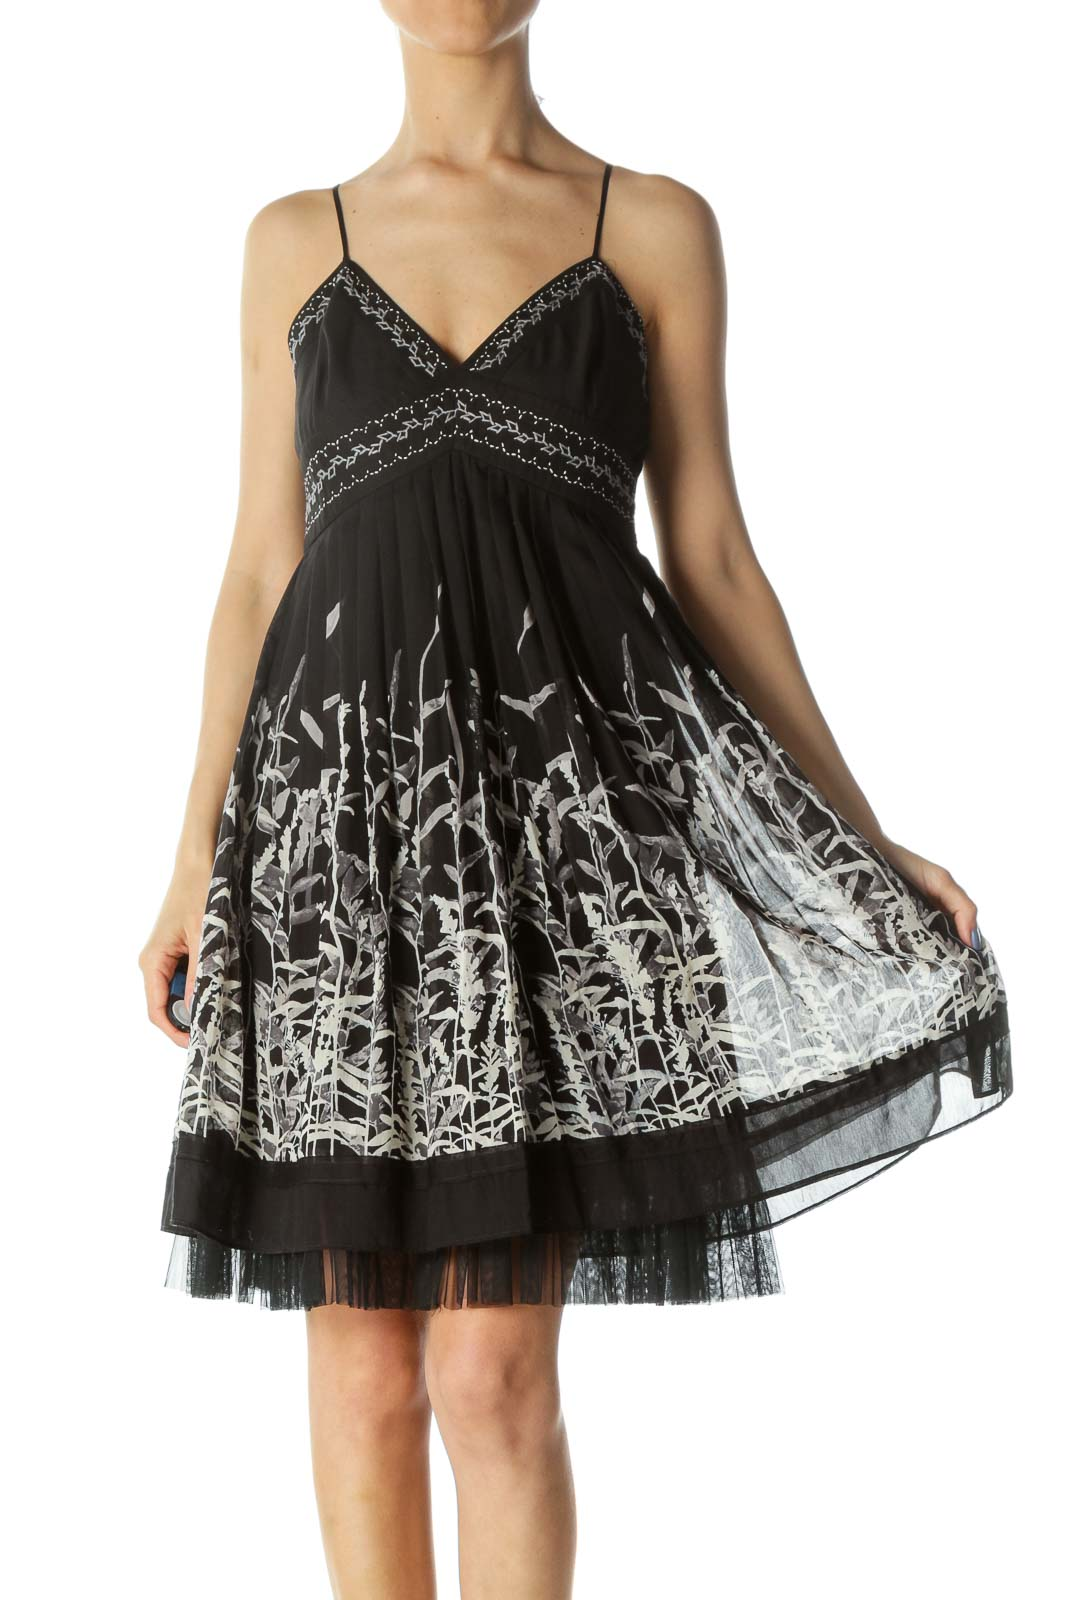 Black/Gray/White Plant-Print Pleated Upper-Stitching Cocktail Dress